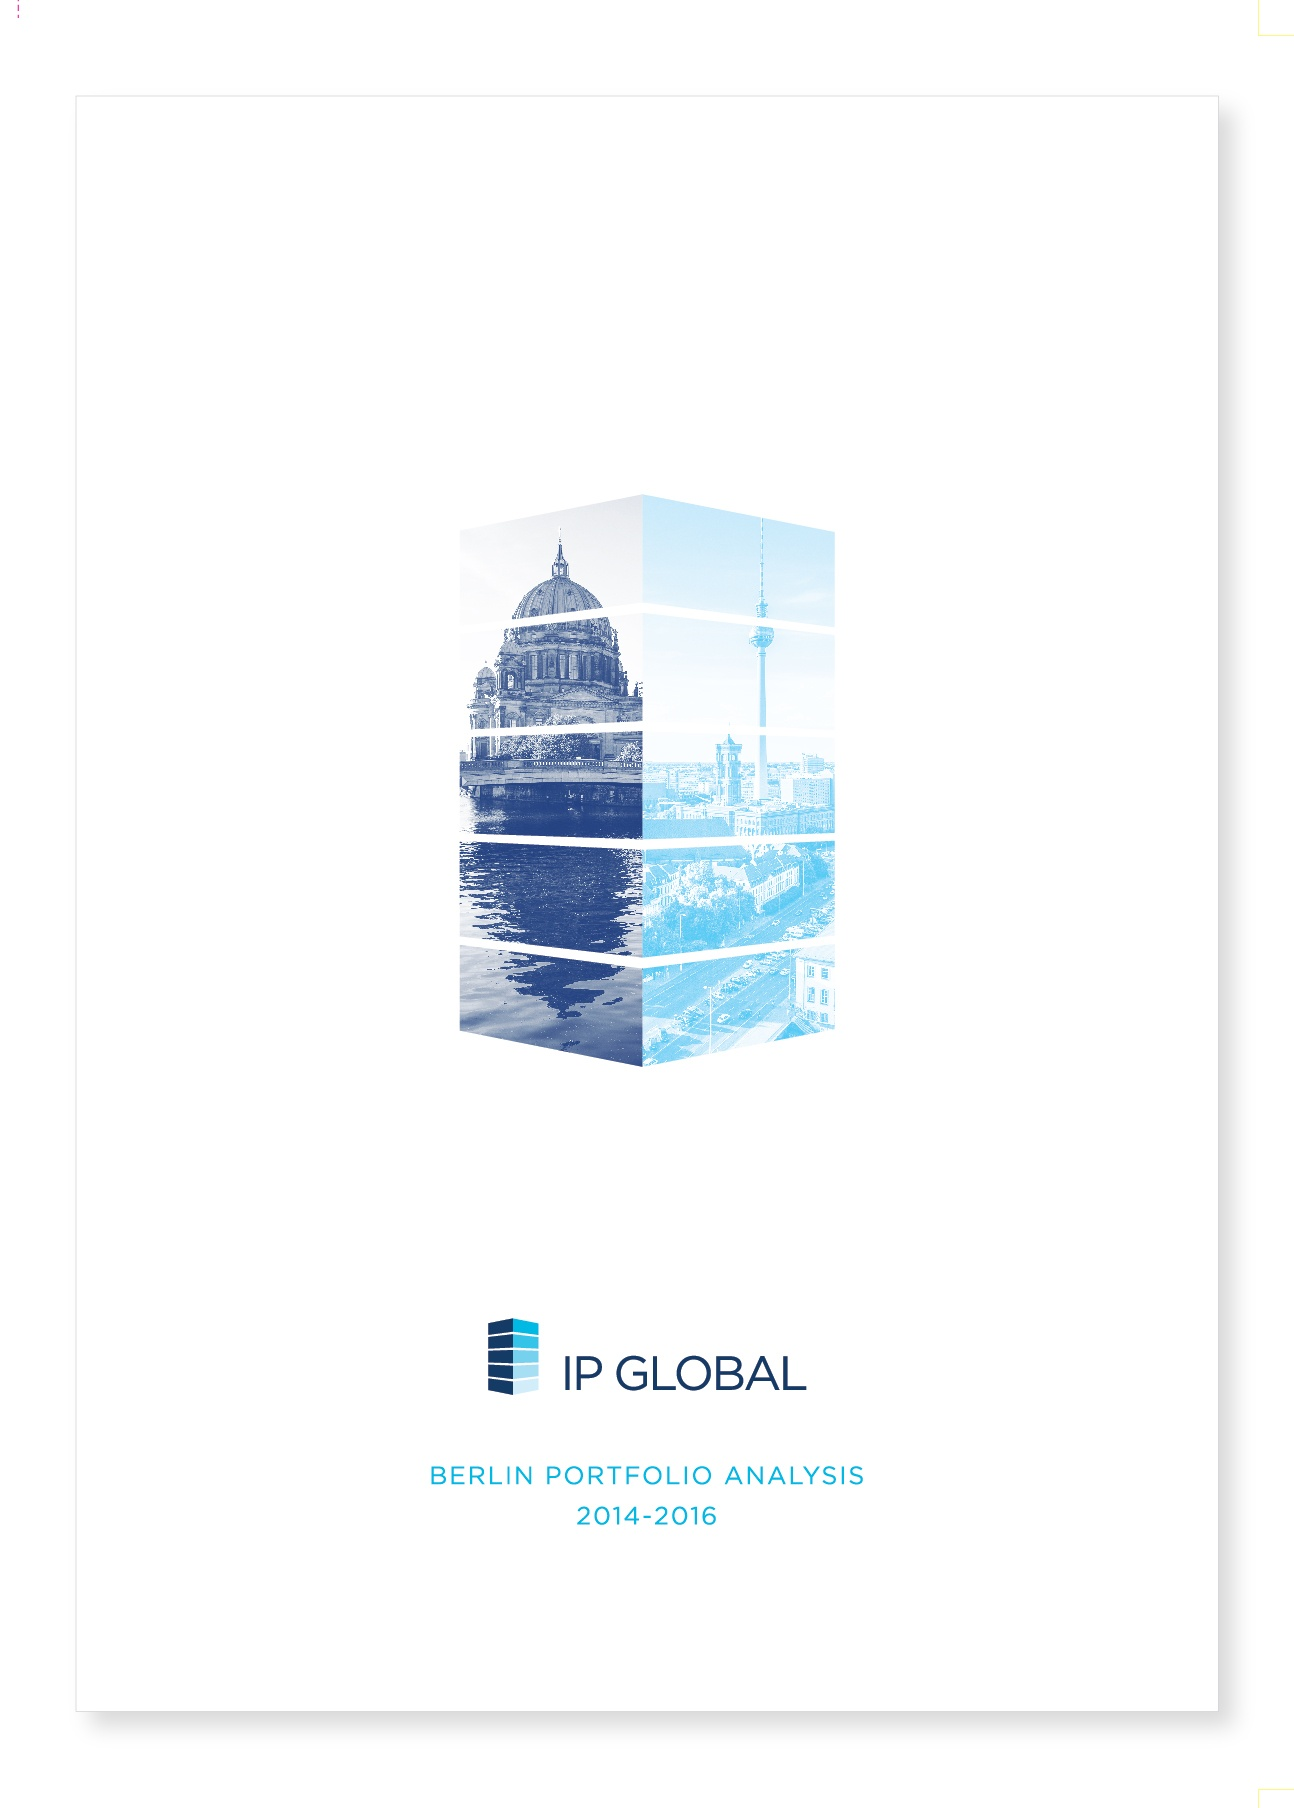 IPG_BerlinValuations_Cover_image_web.jpg